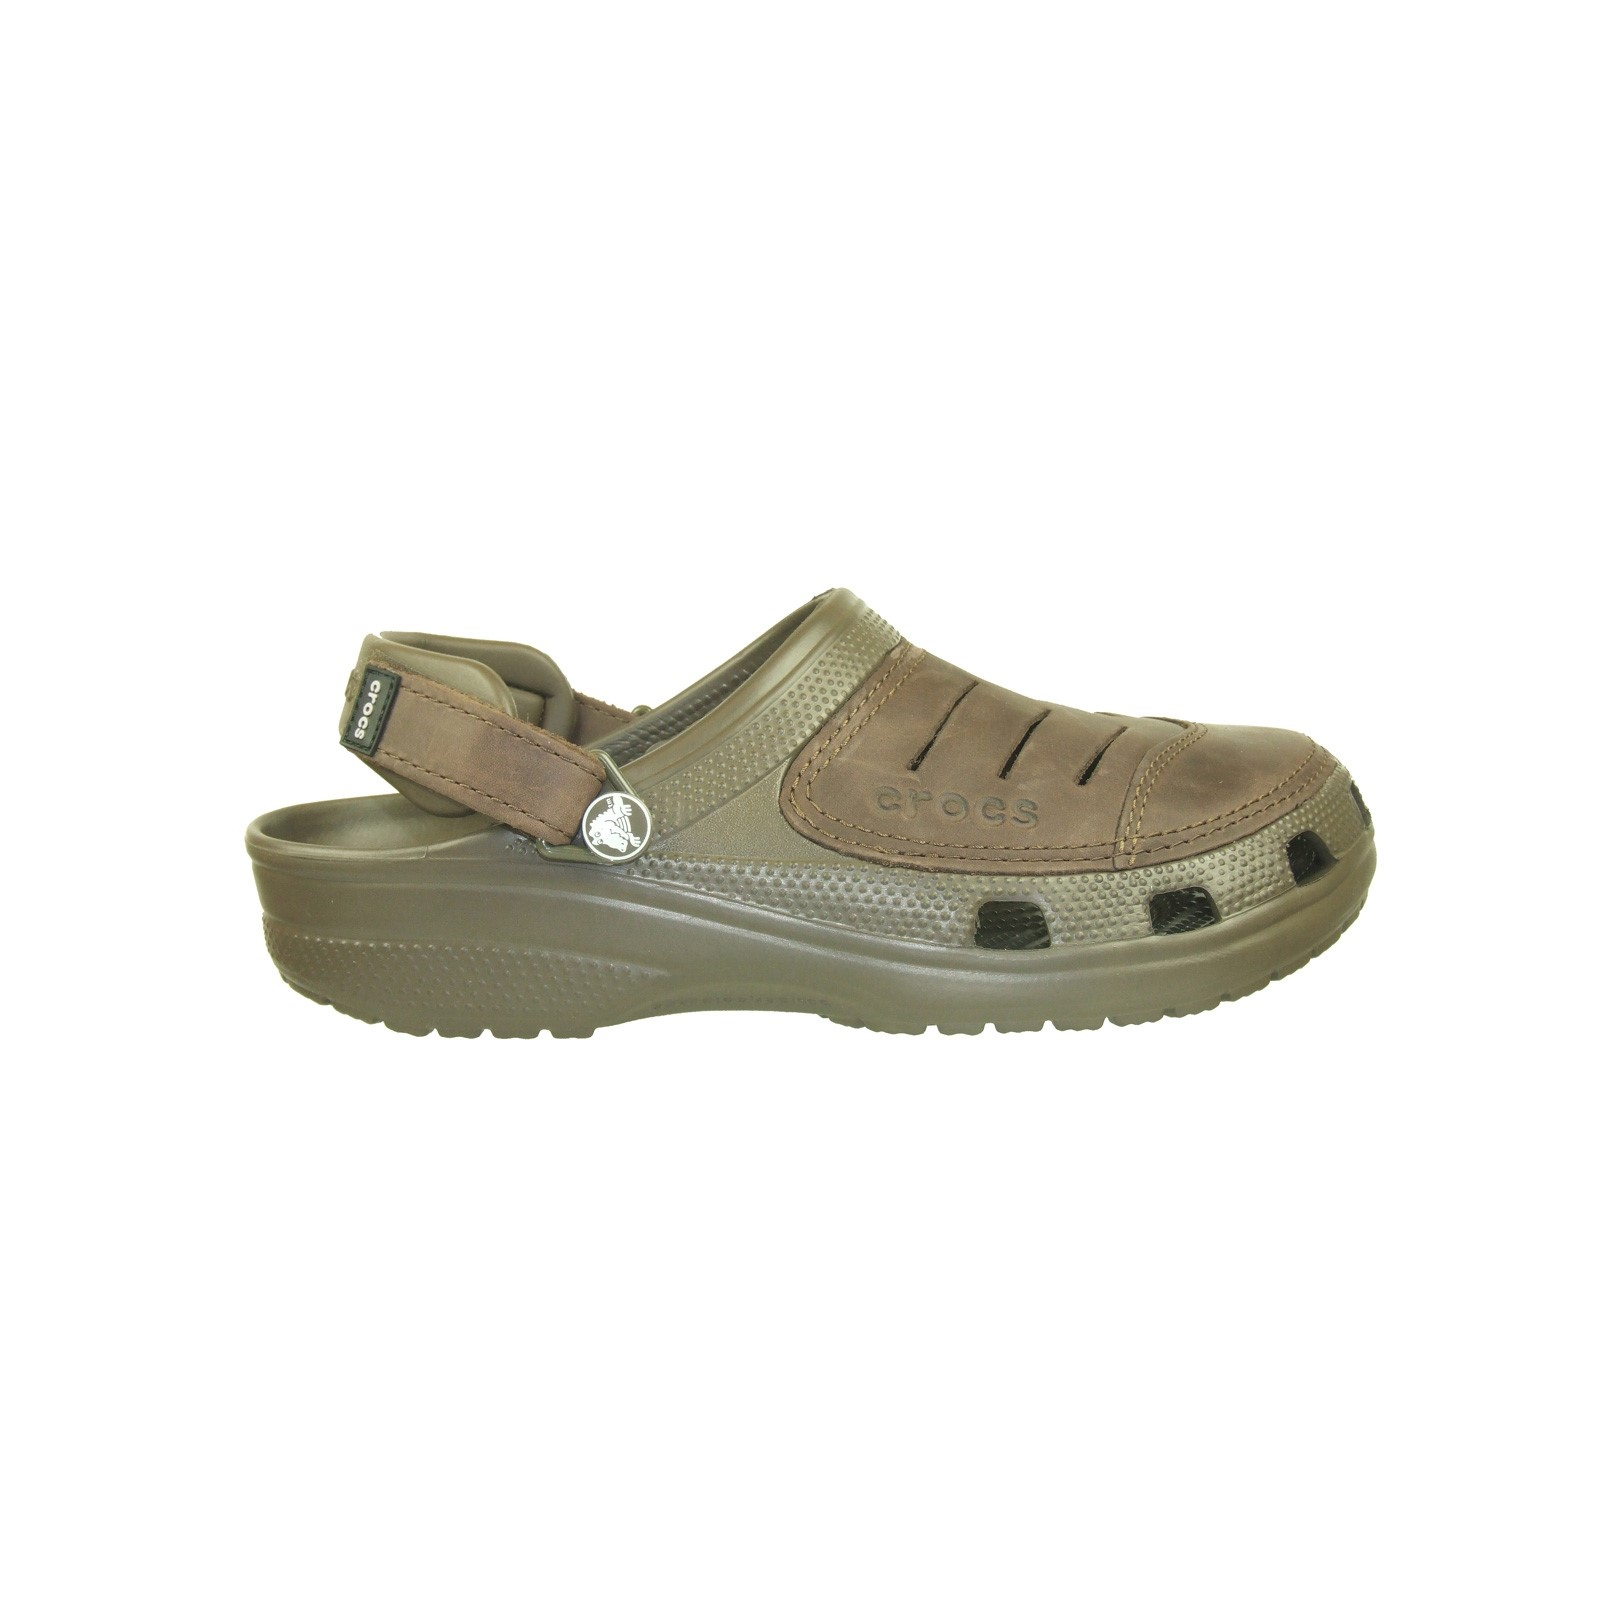 Men's Crocs,Yukon Clogs